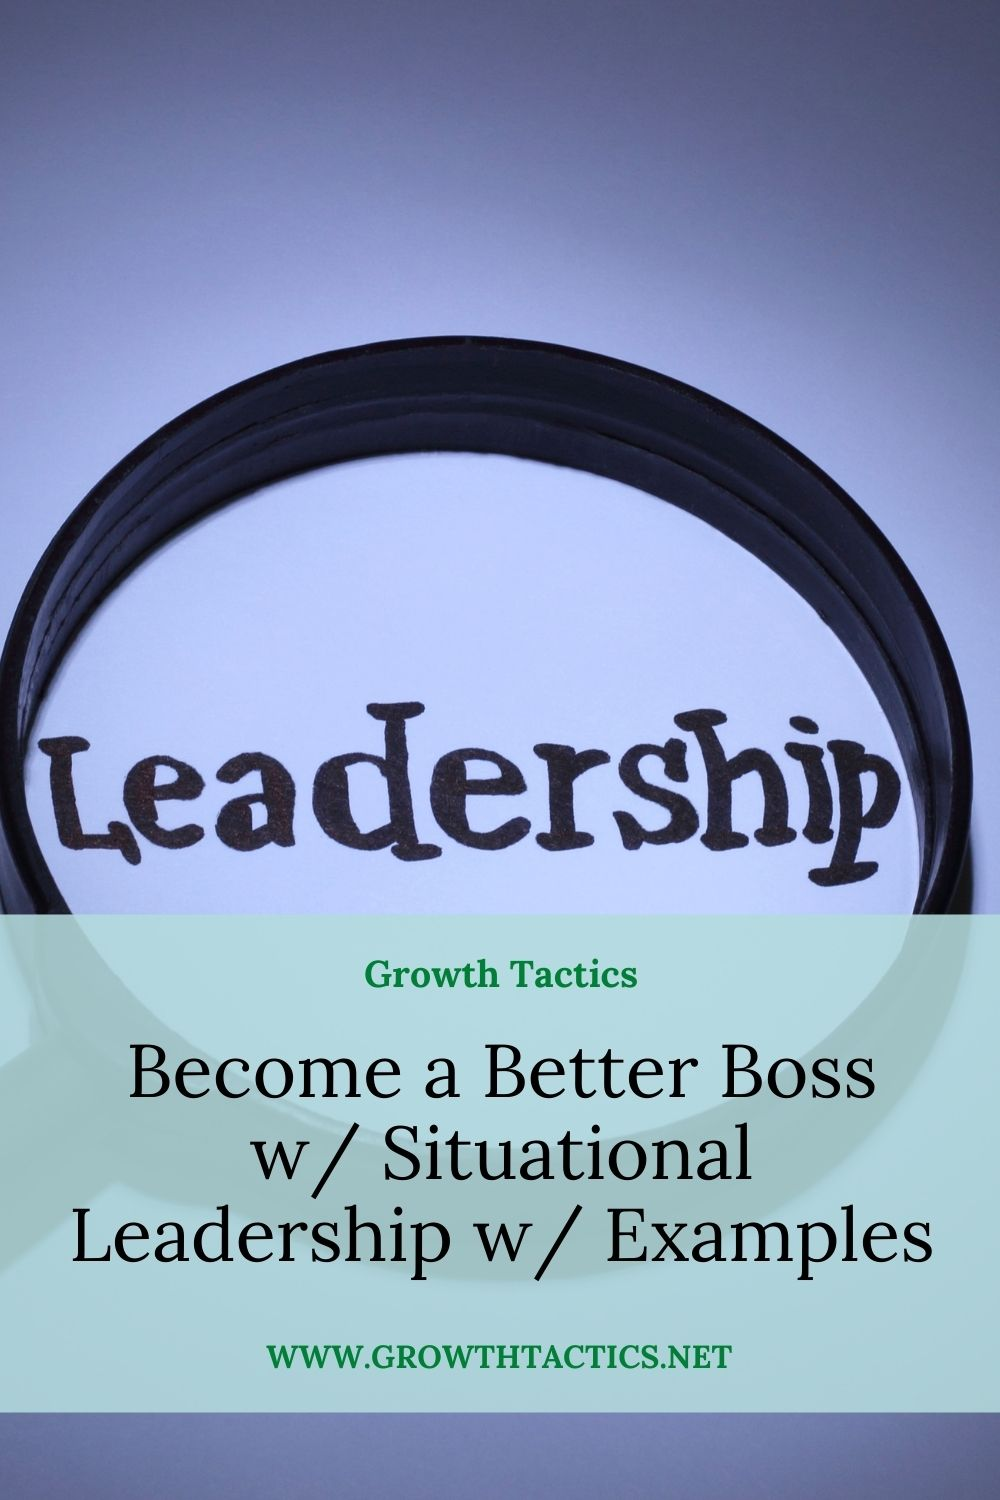 How Will Situational Leadership Increase Your Skills w/ Examples